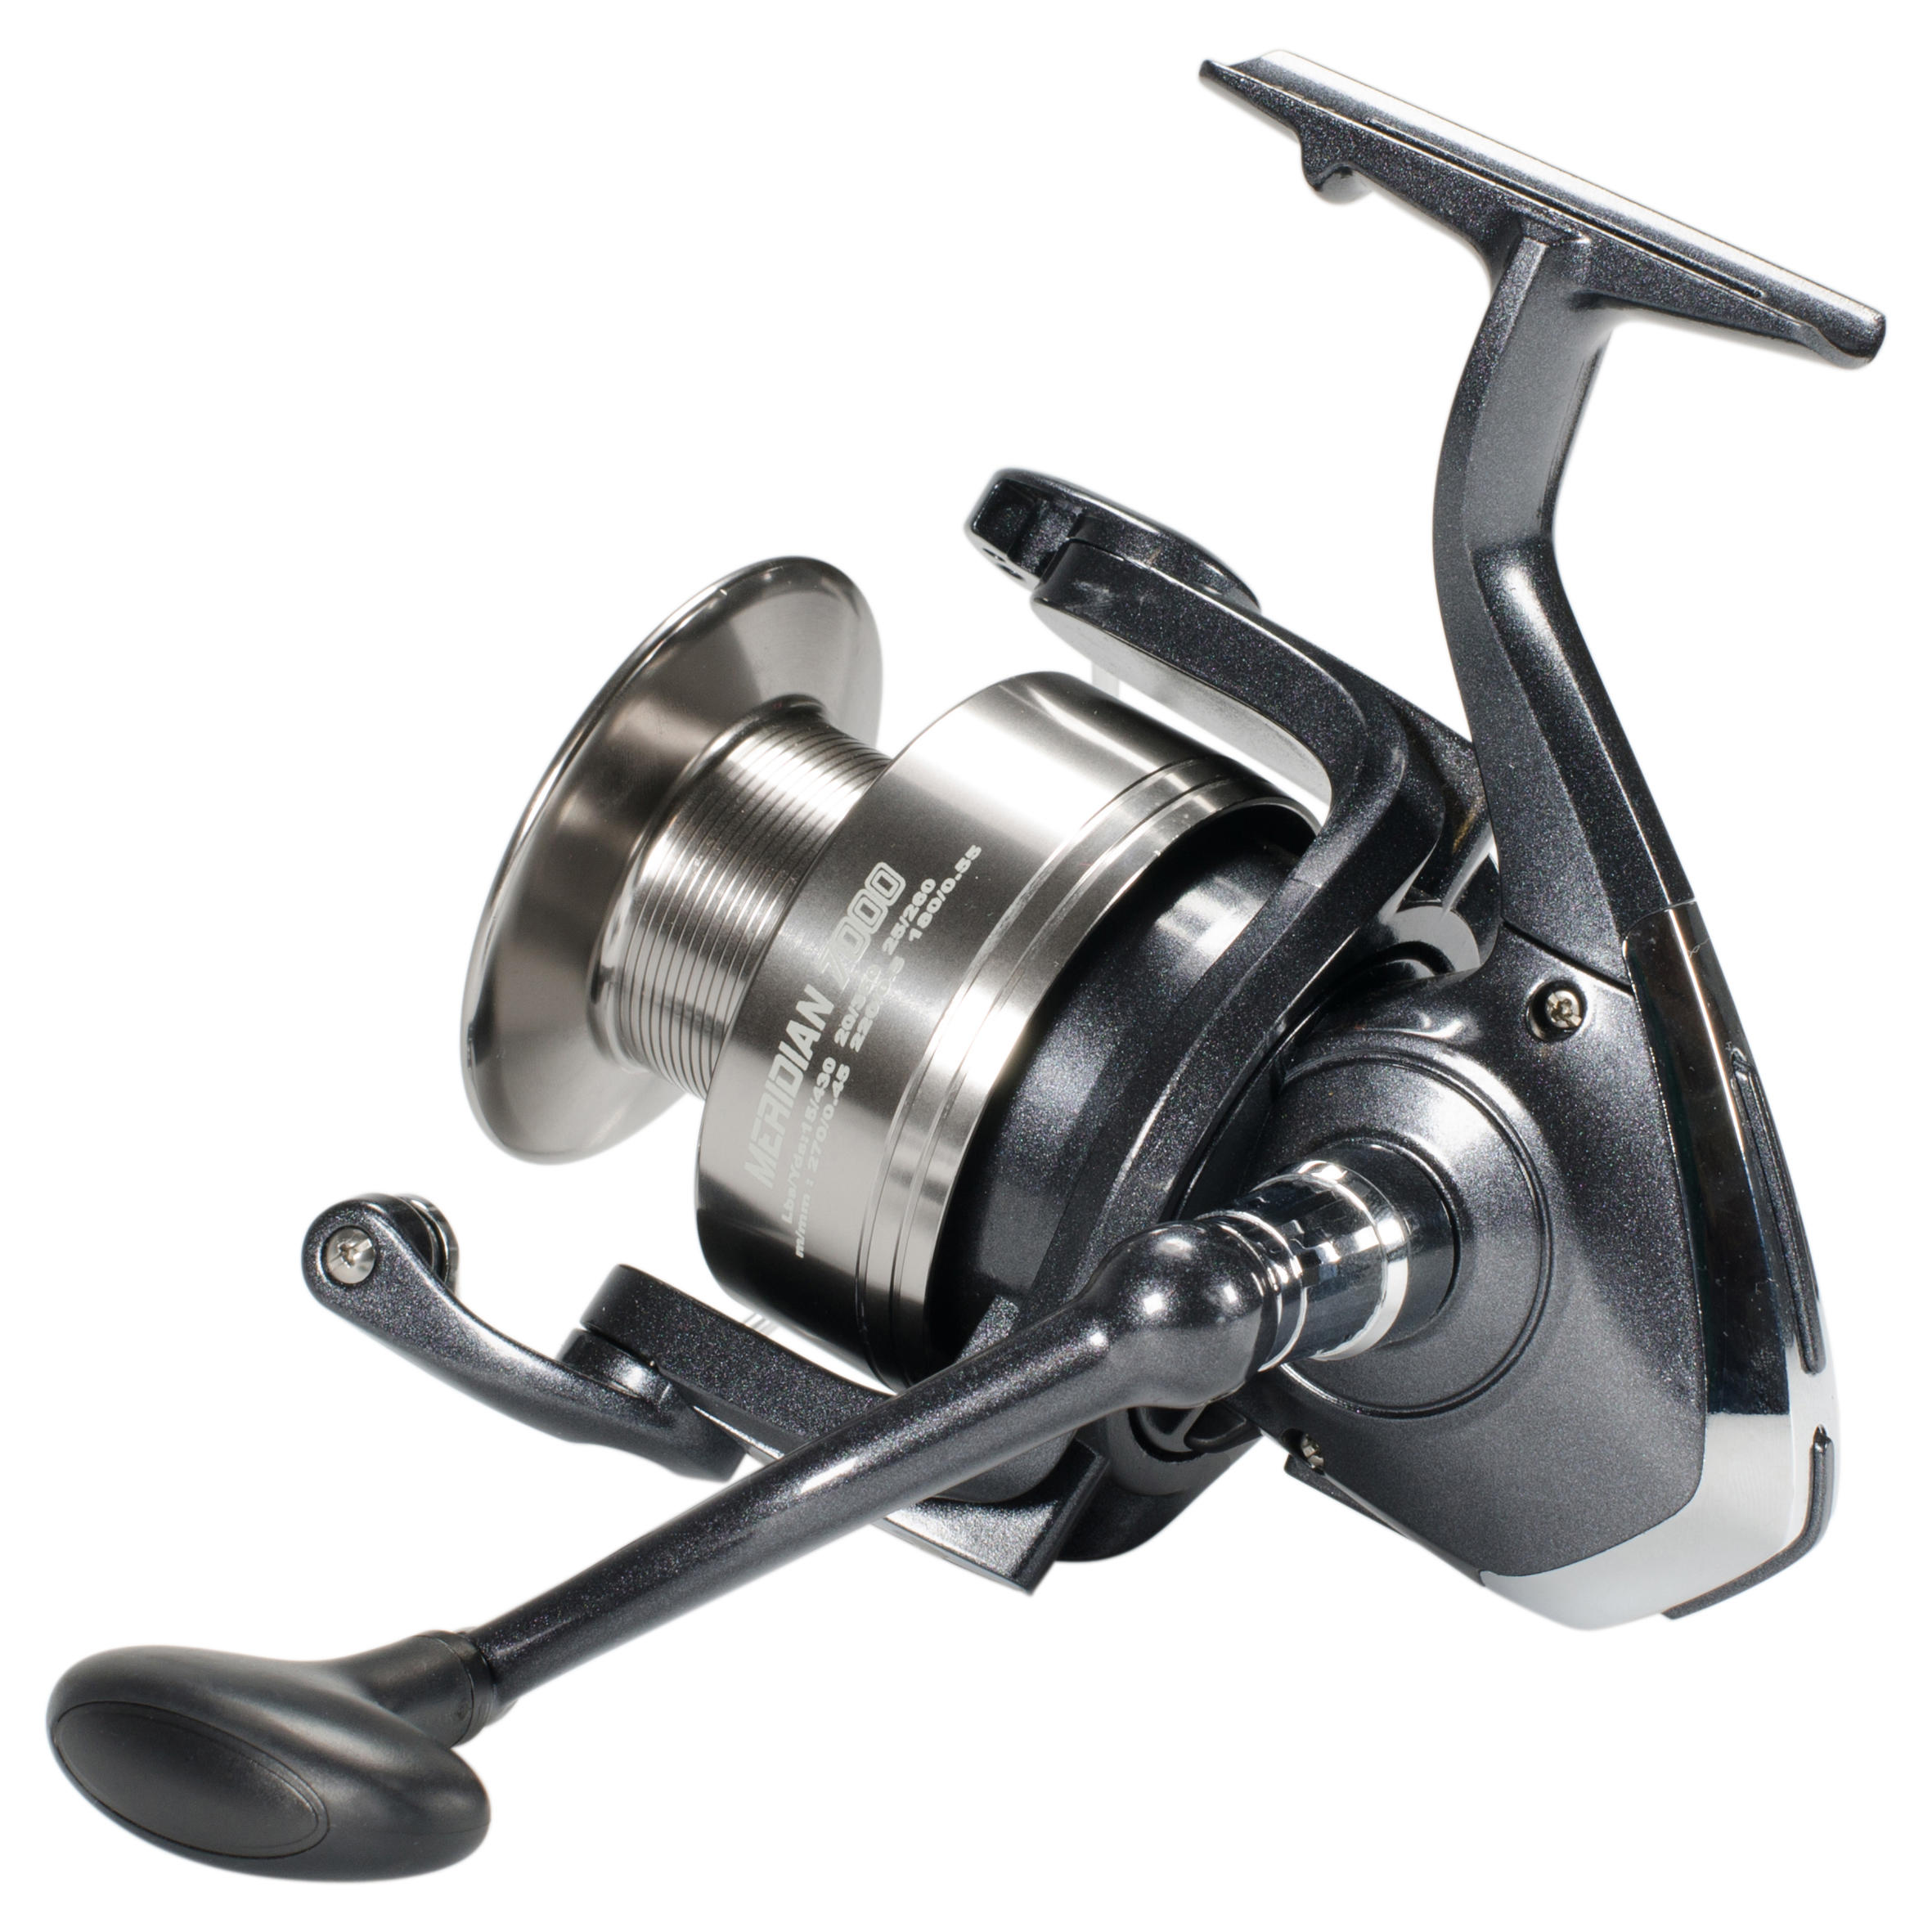 MERIDIAN 7000 heavy fishing reel